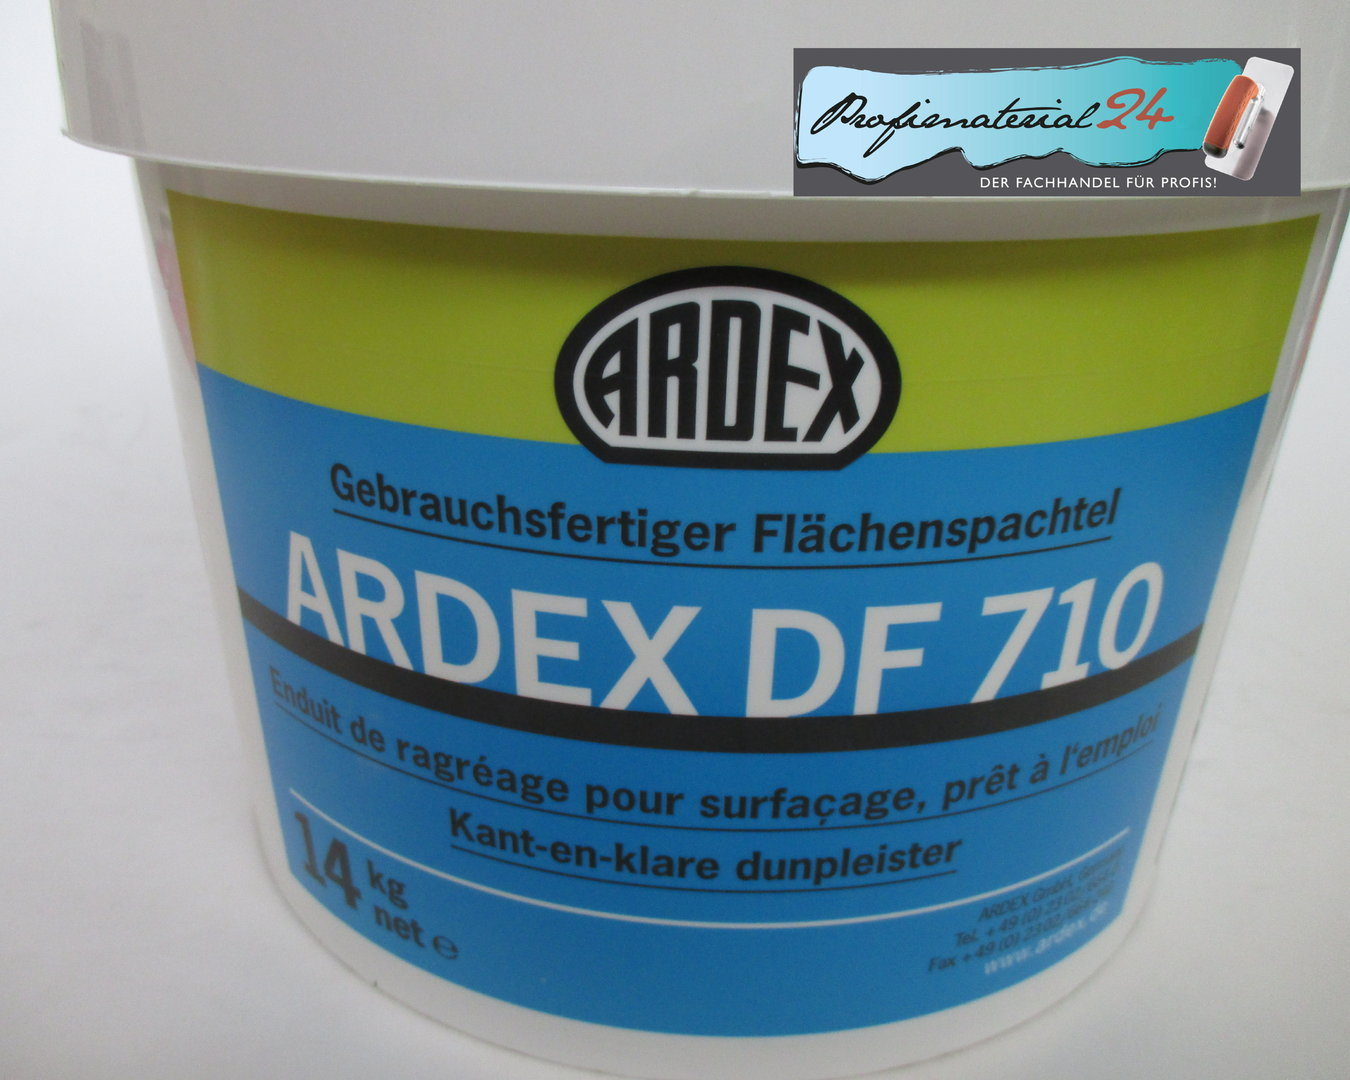 ardex df710 fl chenspachtel profimateriai24 ihr ardex experte. Black Bedroom Furniture Sets. Home Design Ideas